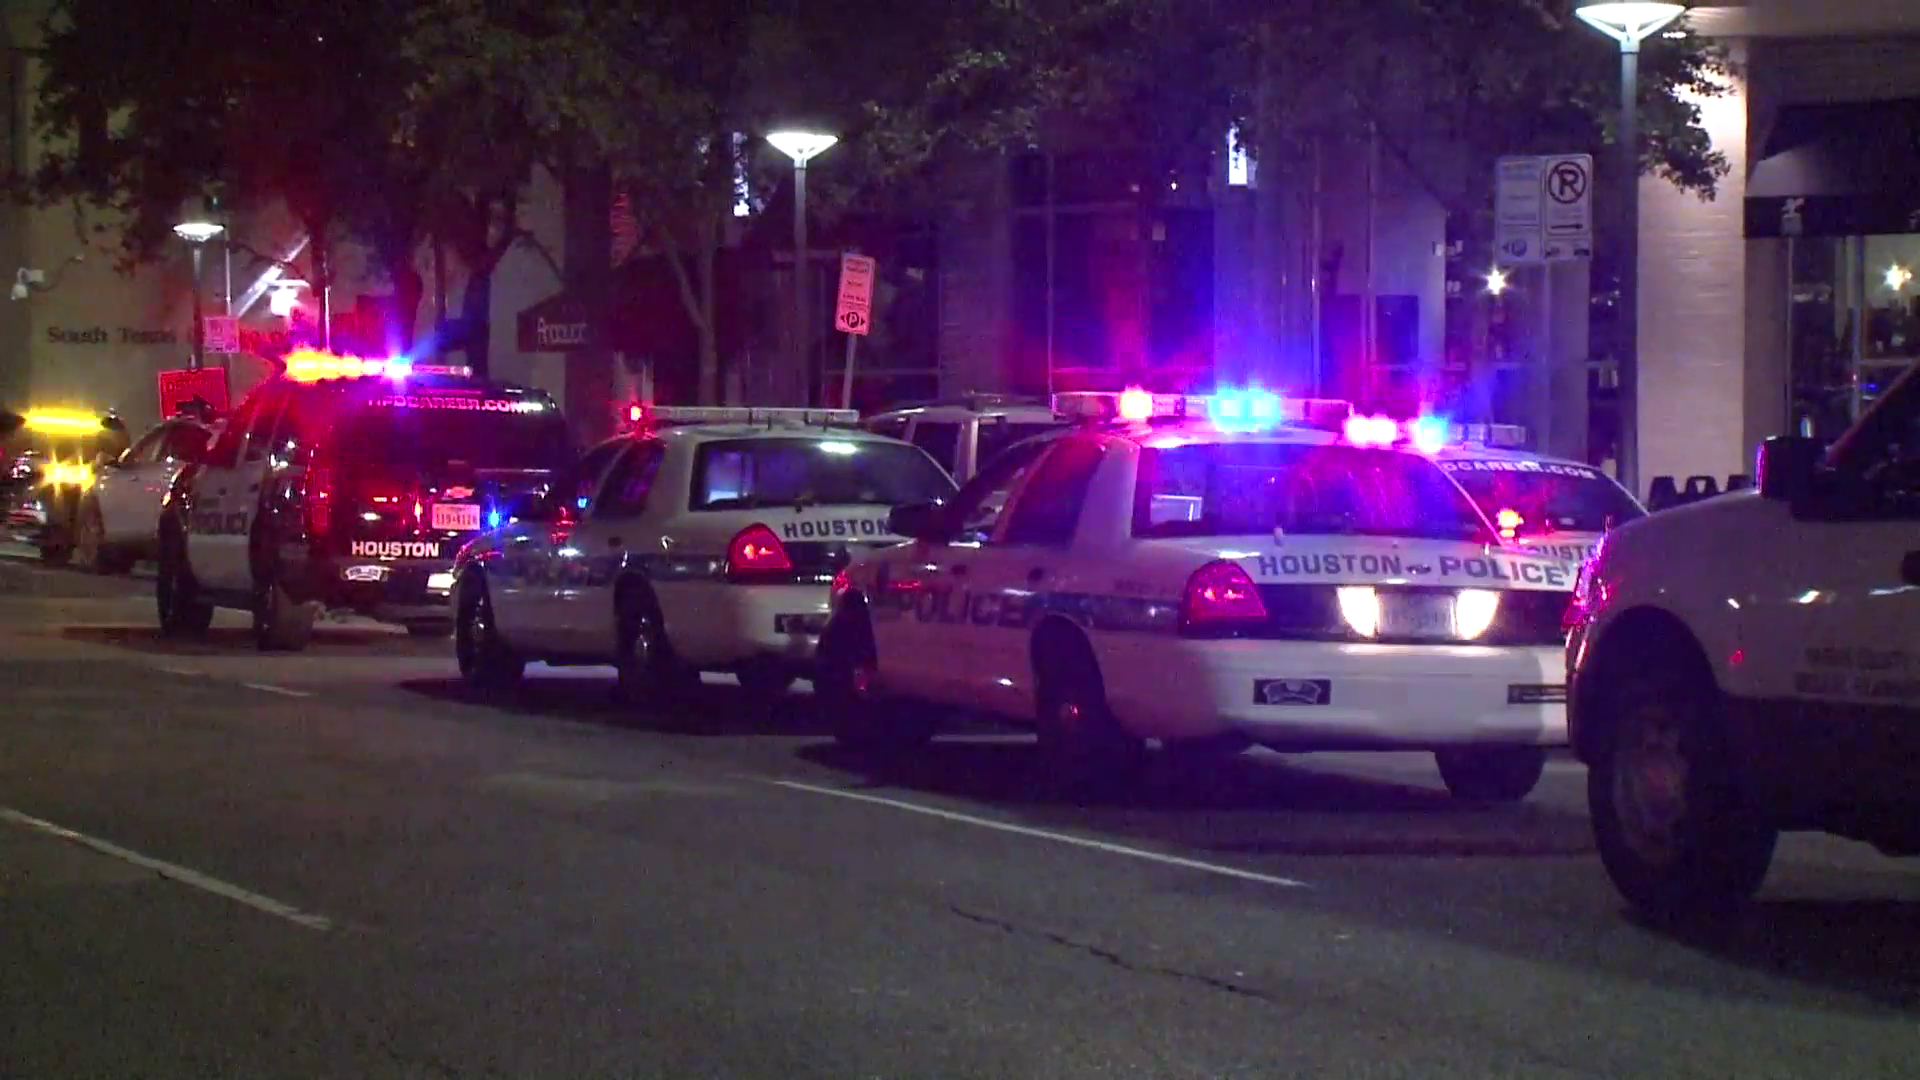 Man falls to his death from third floor balcony in downtown Houston